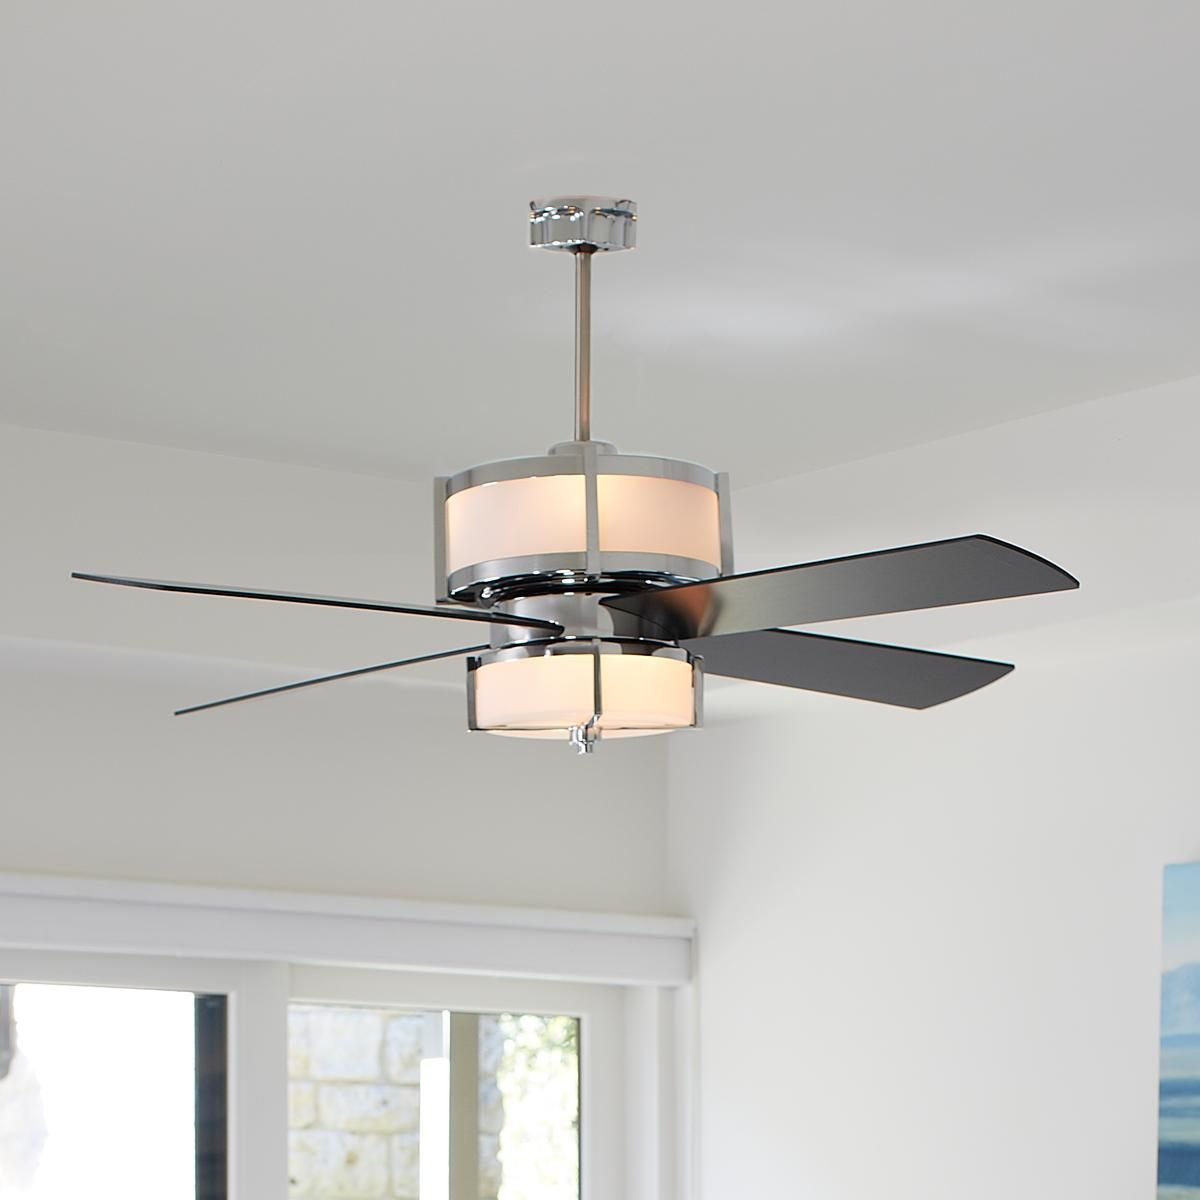 Upscale Modern Ceiling Fan Modern Ceiling And Ceiling Fan